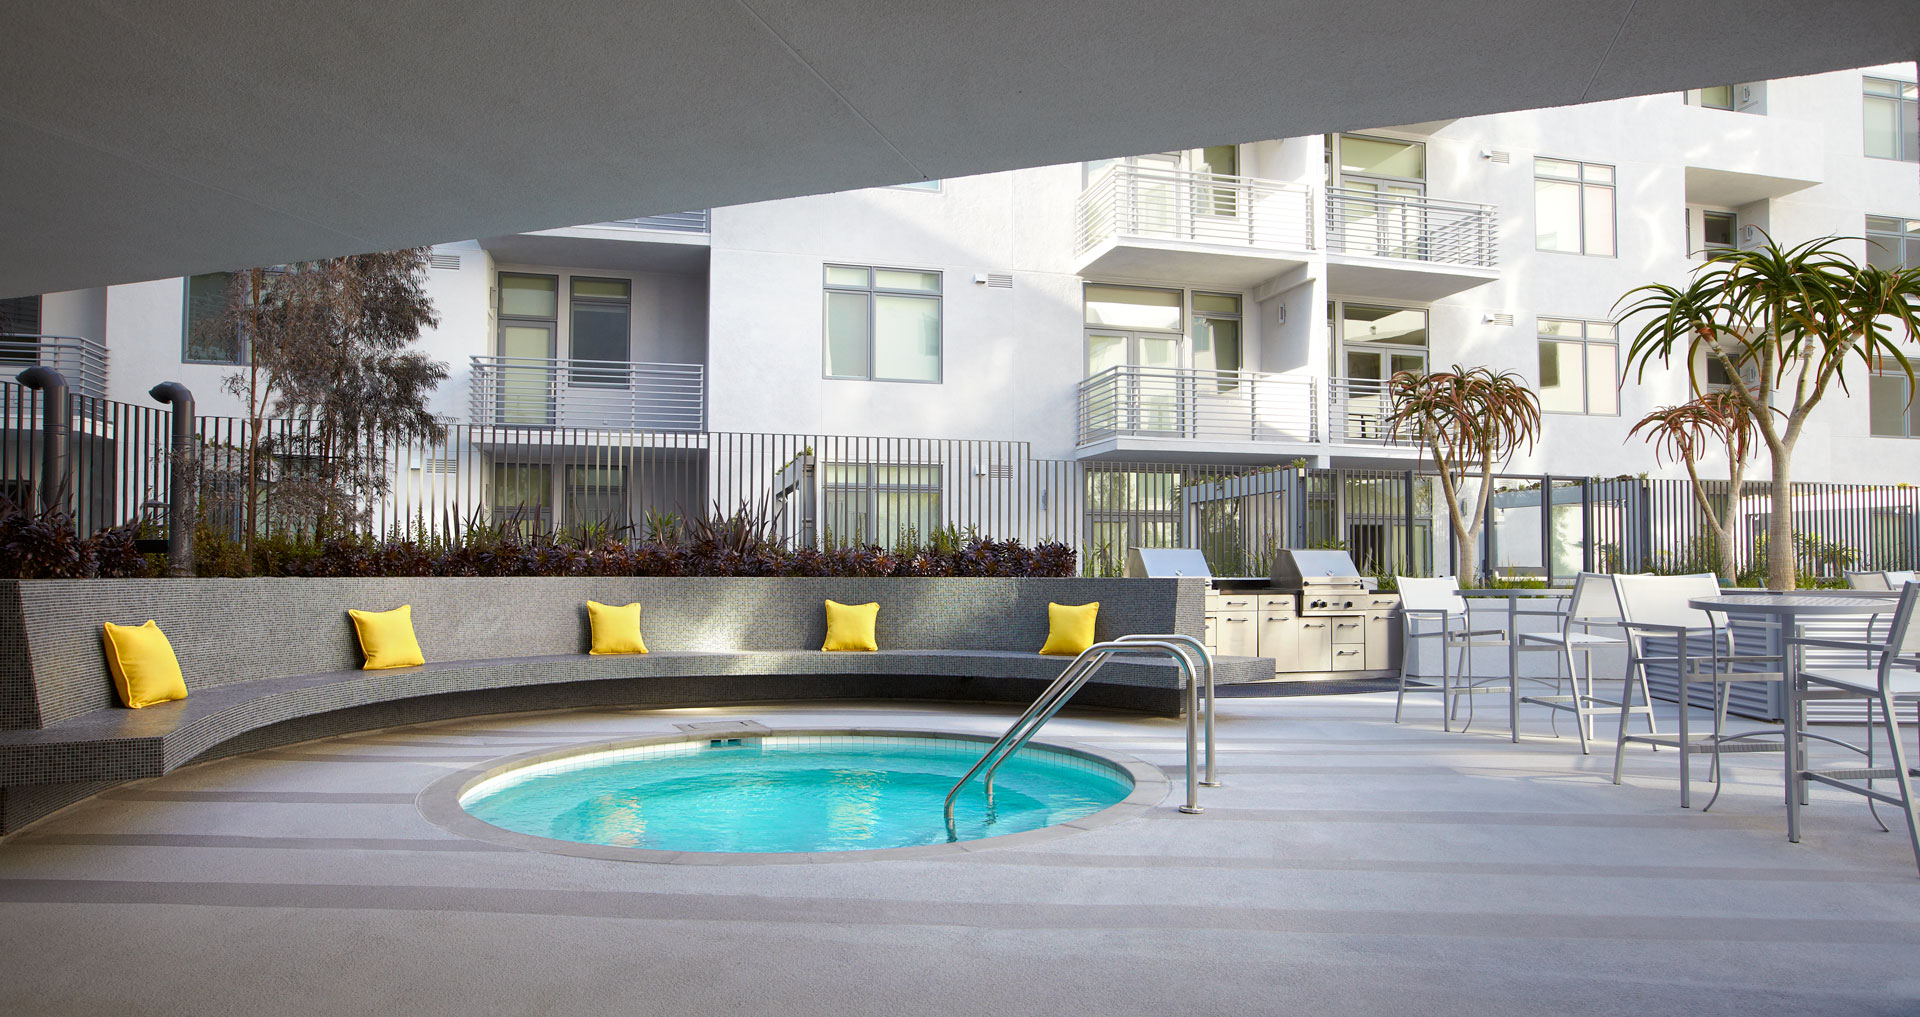 The Avenue outdoor area with jacuzzi